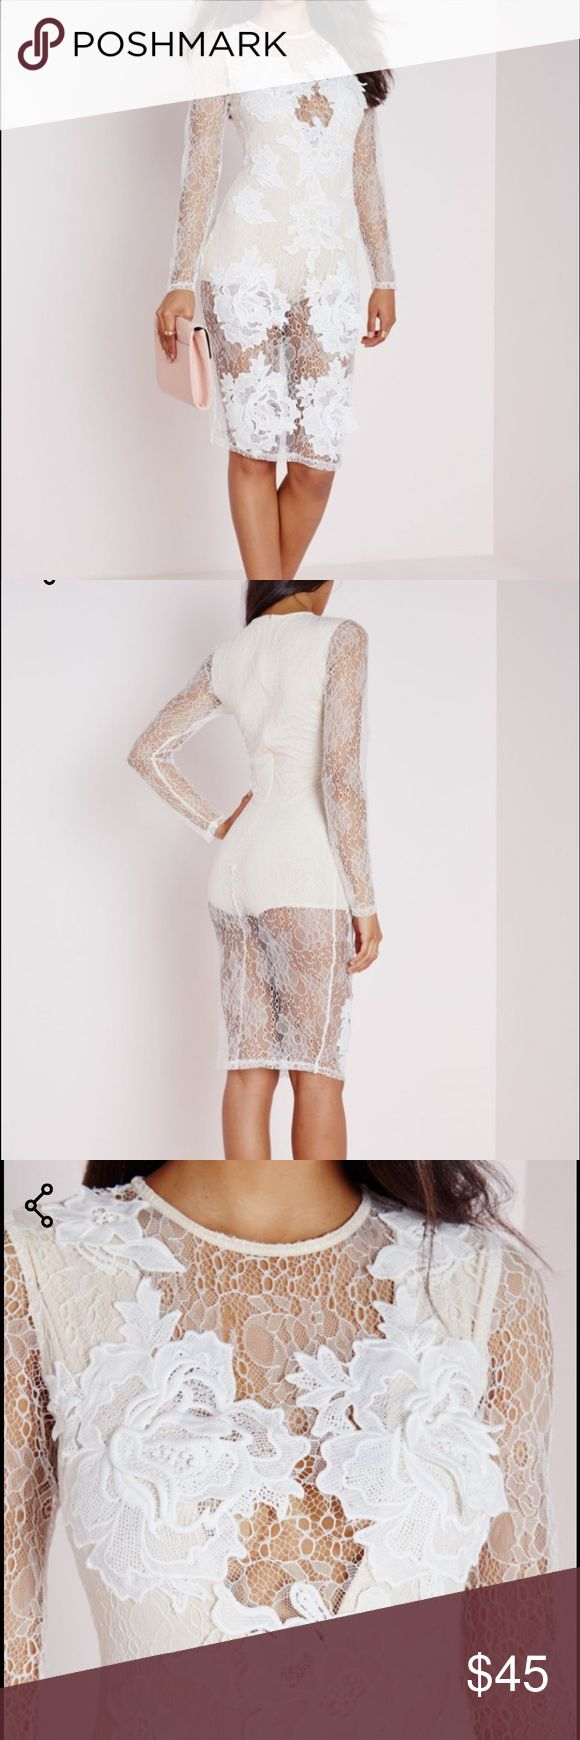 NWT Missguided lace dress GORGEOUS Missguided dress. Never worn! Tags are still attached! Nude leotard underneath is included. Truly a stunning dress! This dress does have a little stretch to it so it does run a bit small. Missguided Dresses Midi